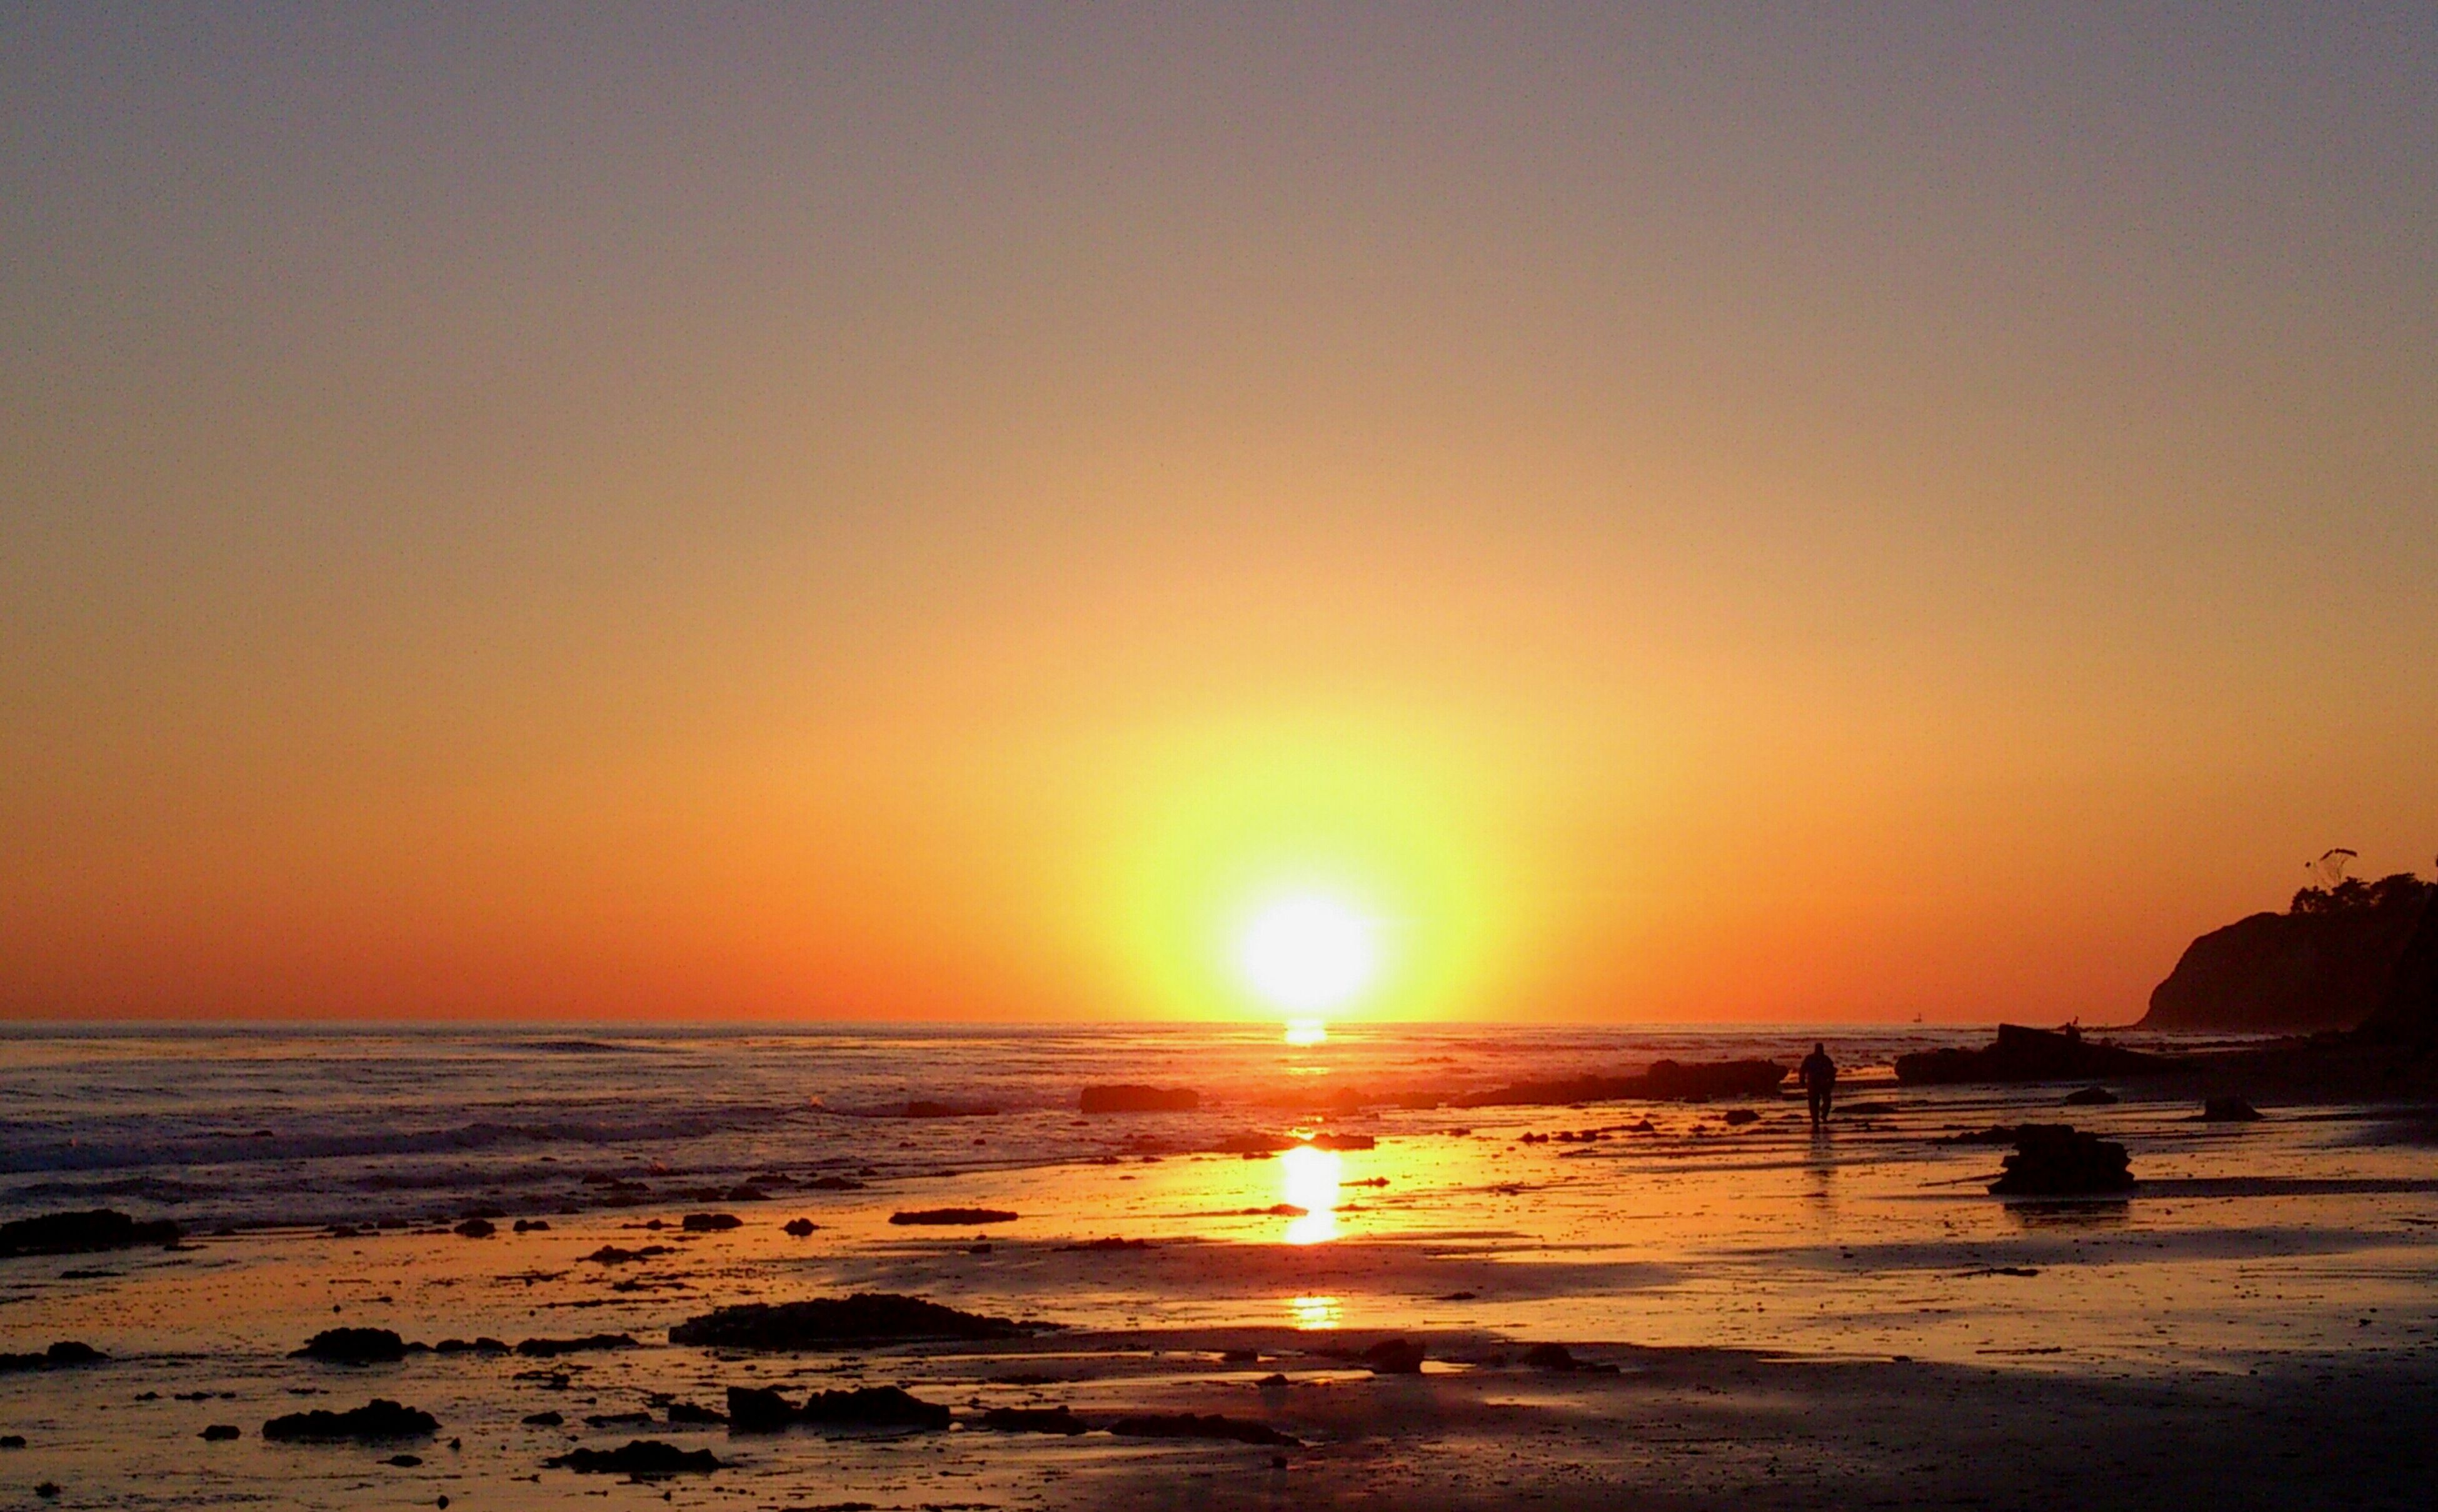 sunset, sea, beach, water, horizon over water, sun, scenics, tranquil scene, shore, tranquility, beauty in nature, orange color, idyllic, nature, sand, clear sky, reflection, sunlight, copy space, coastline